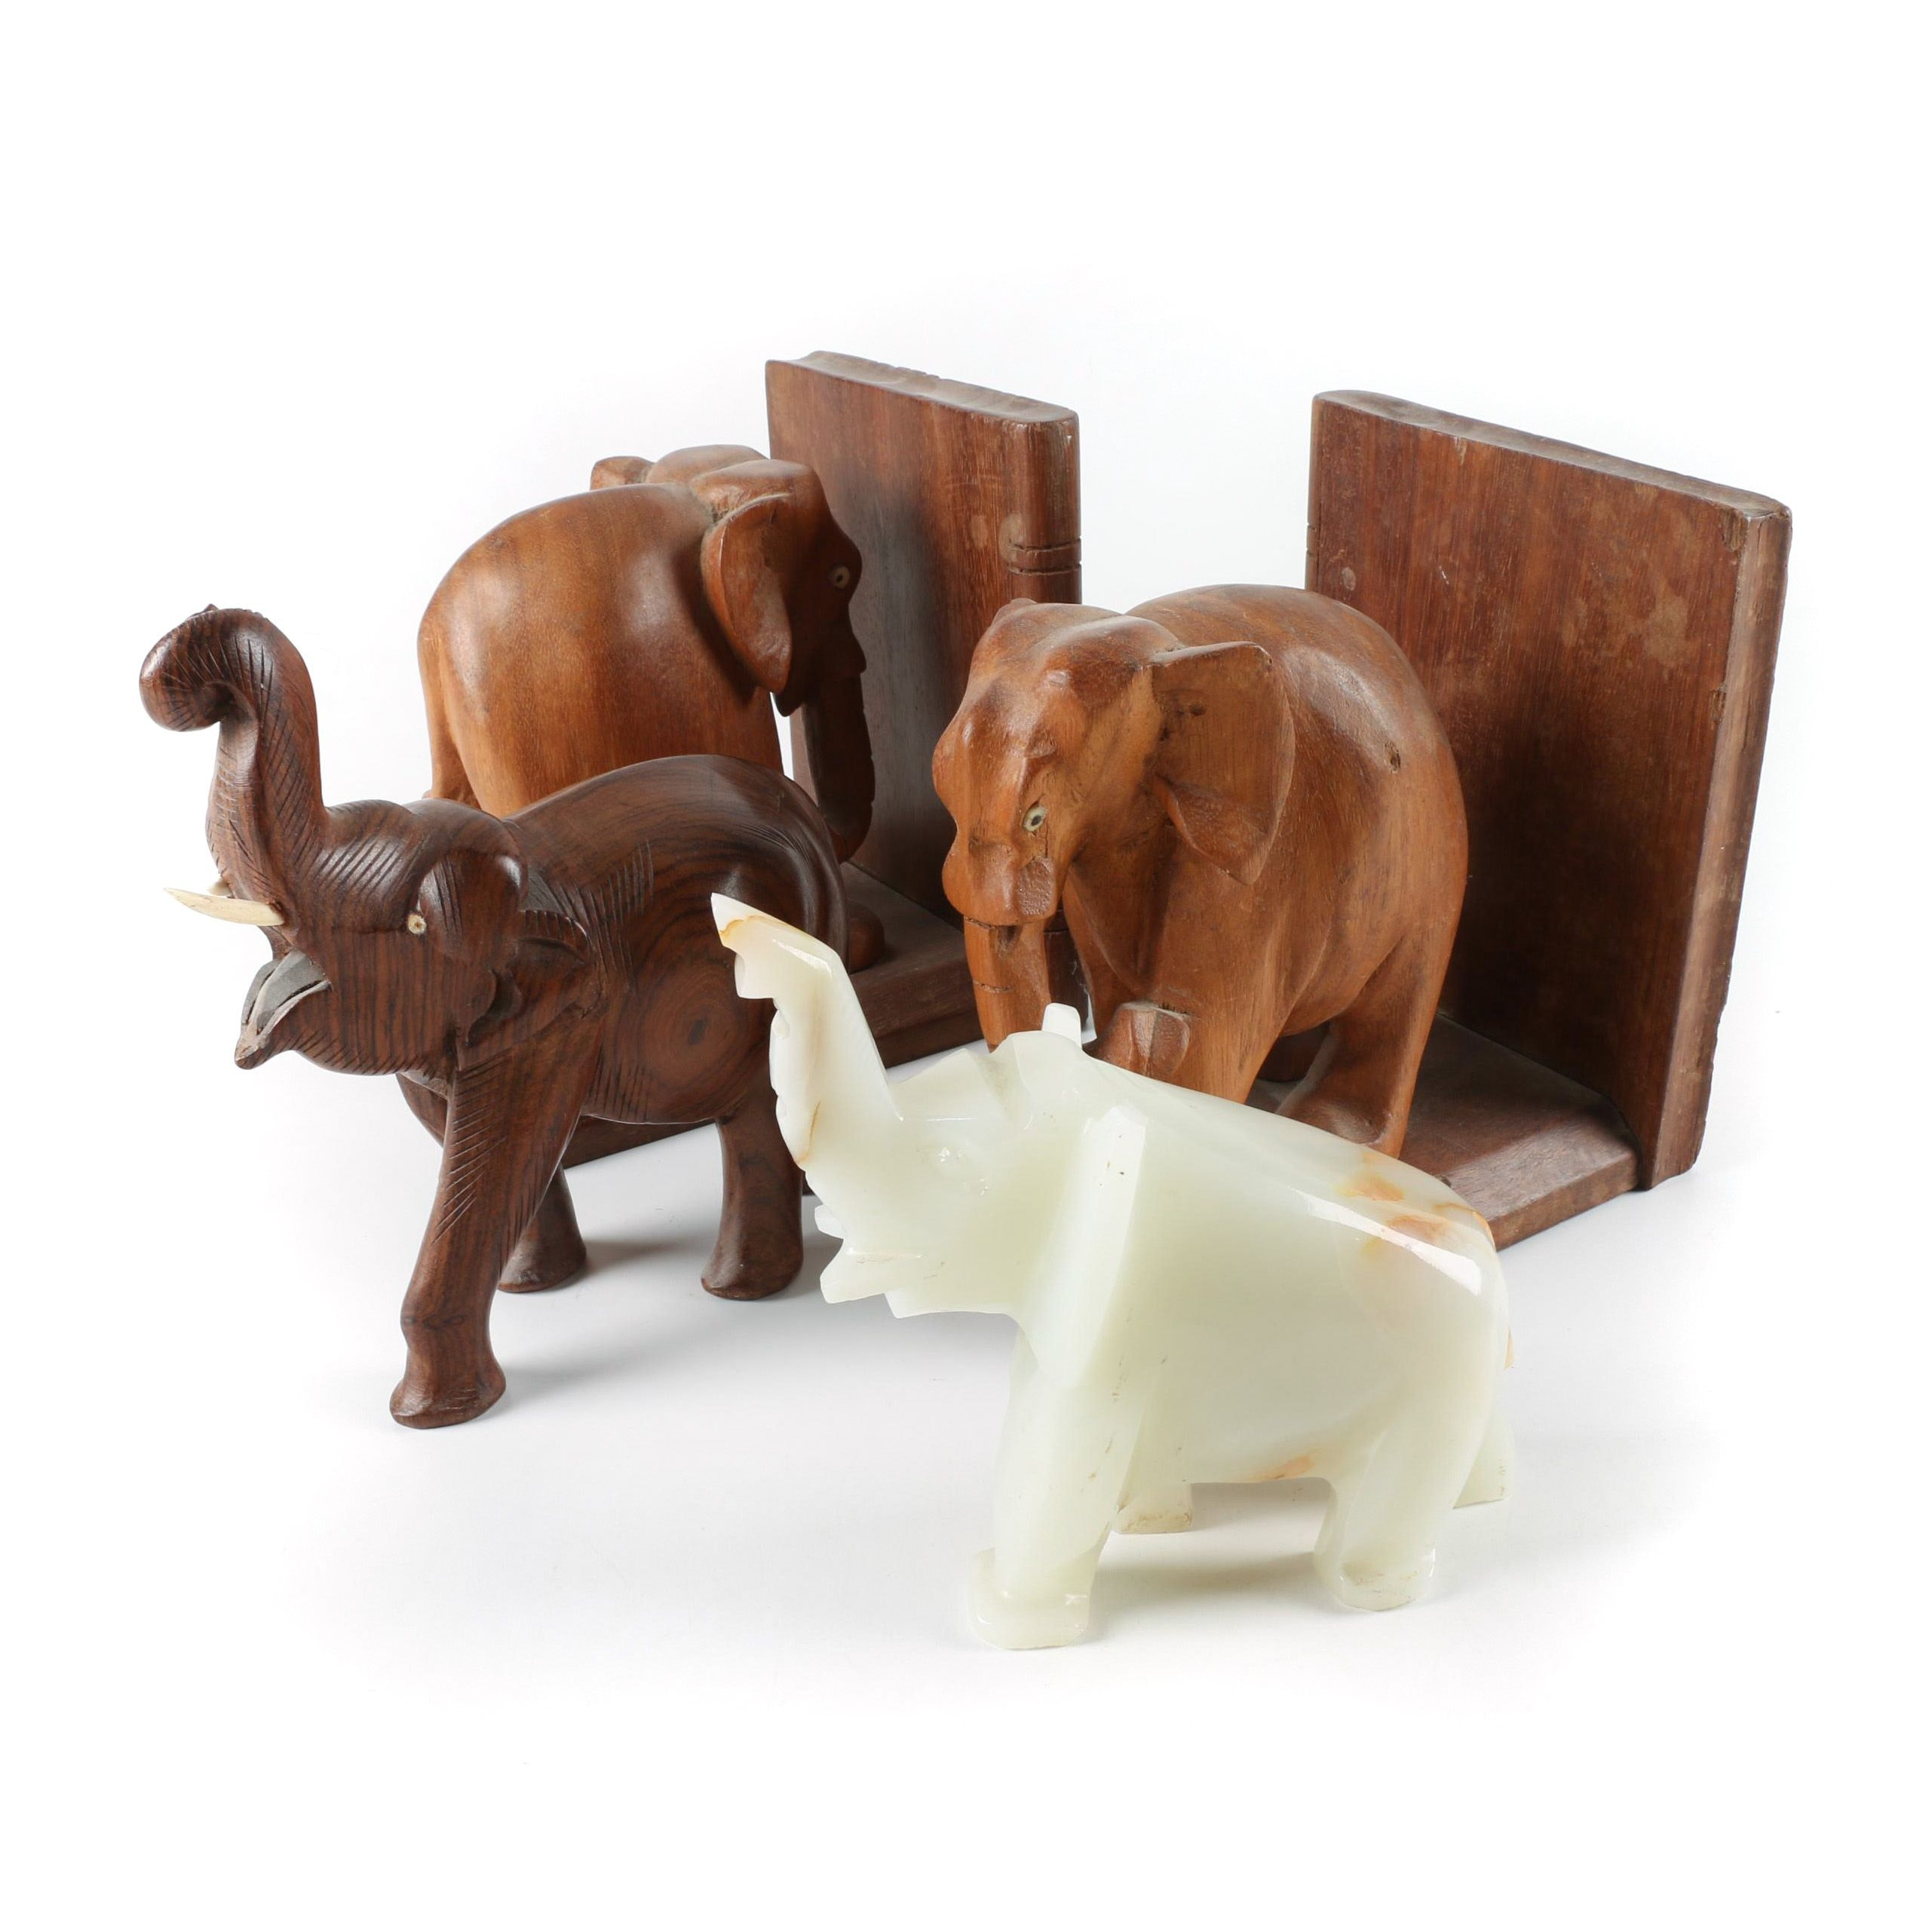 Wood and Calcite Elephant Bookends and Figurines